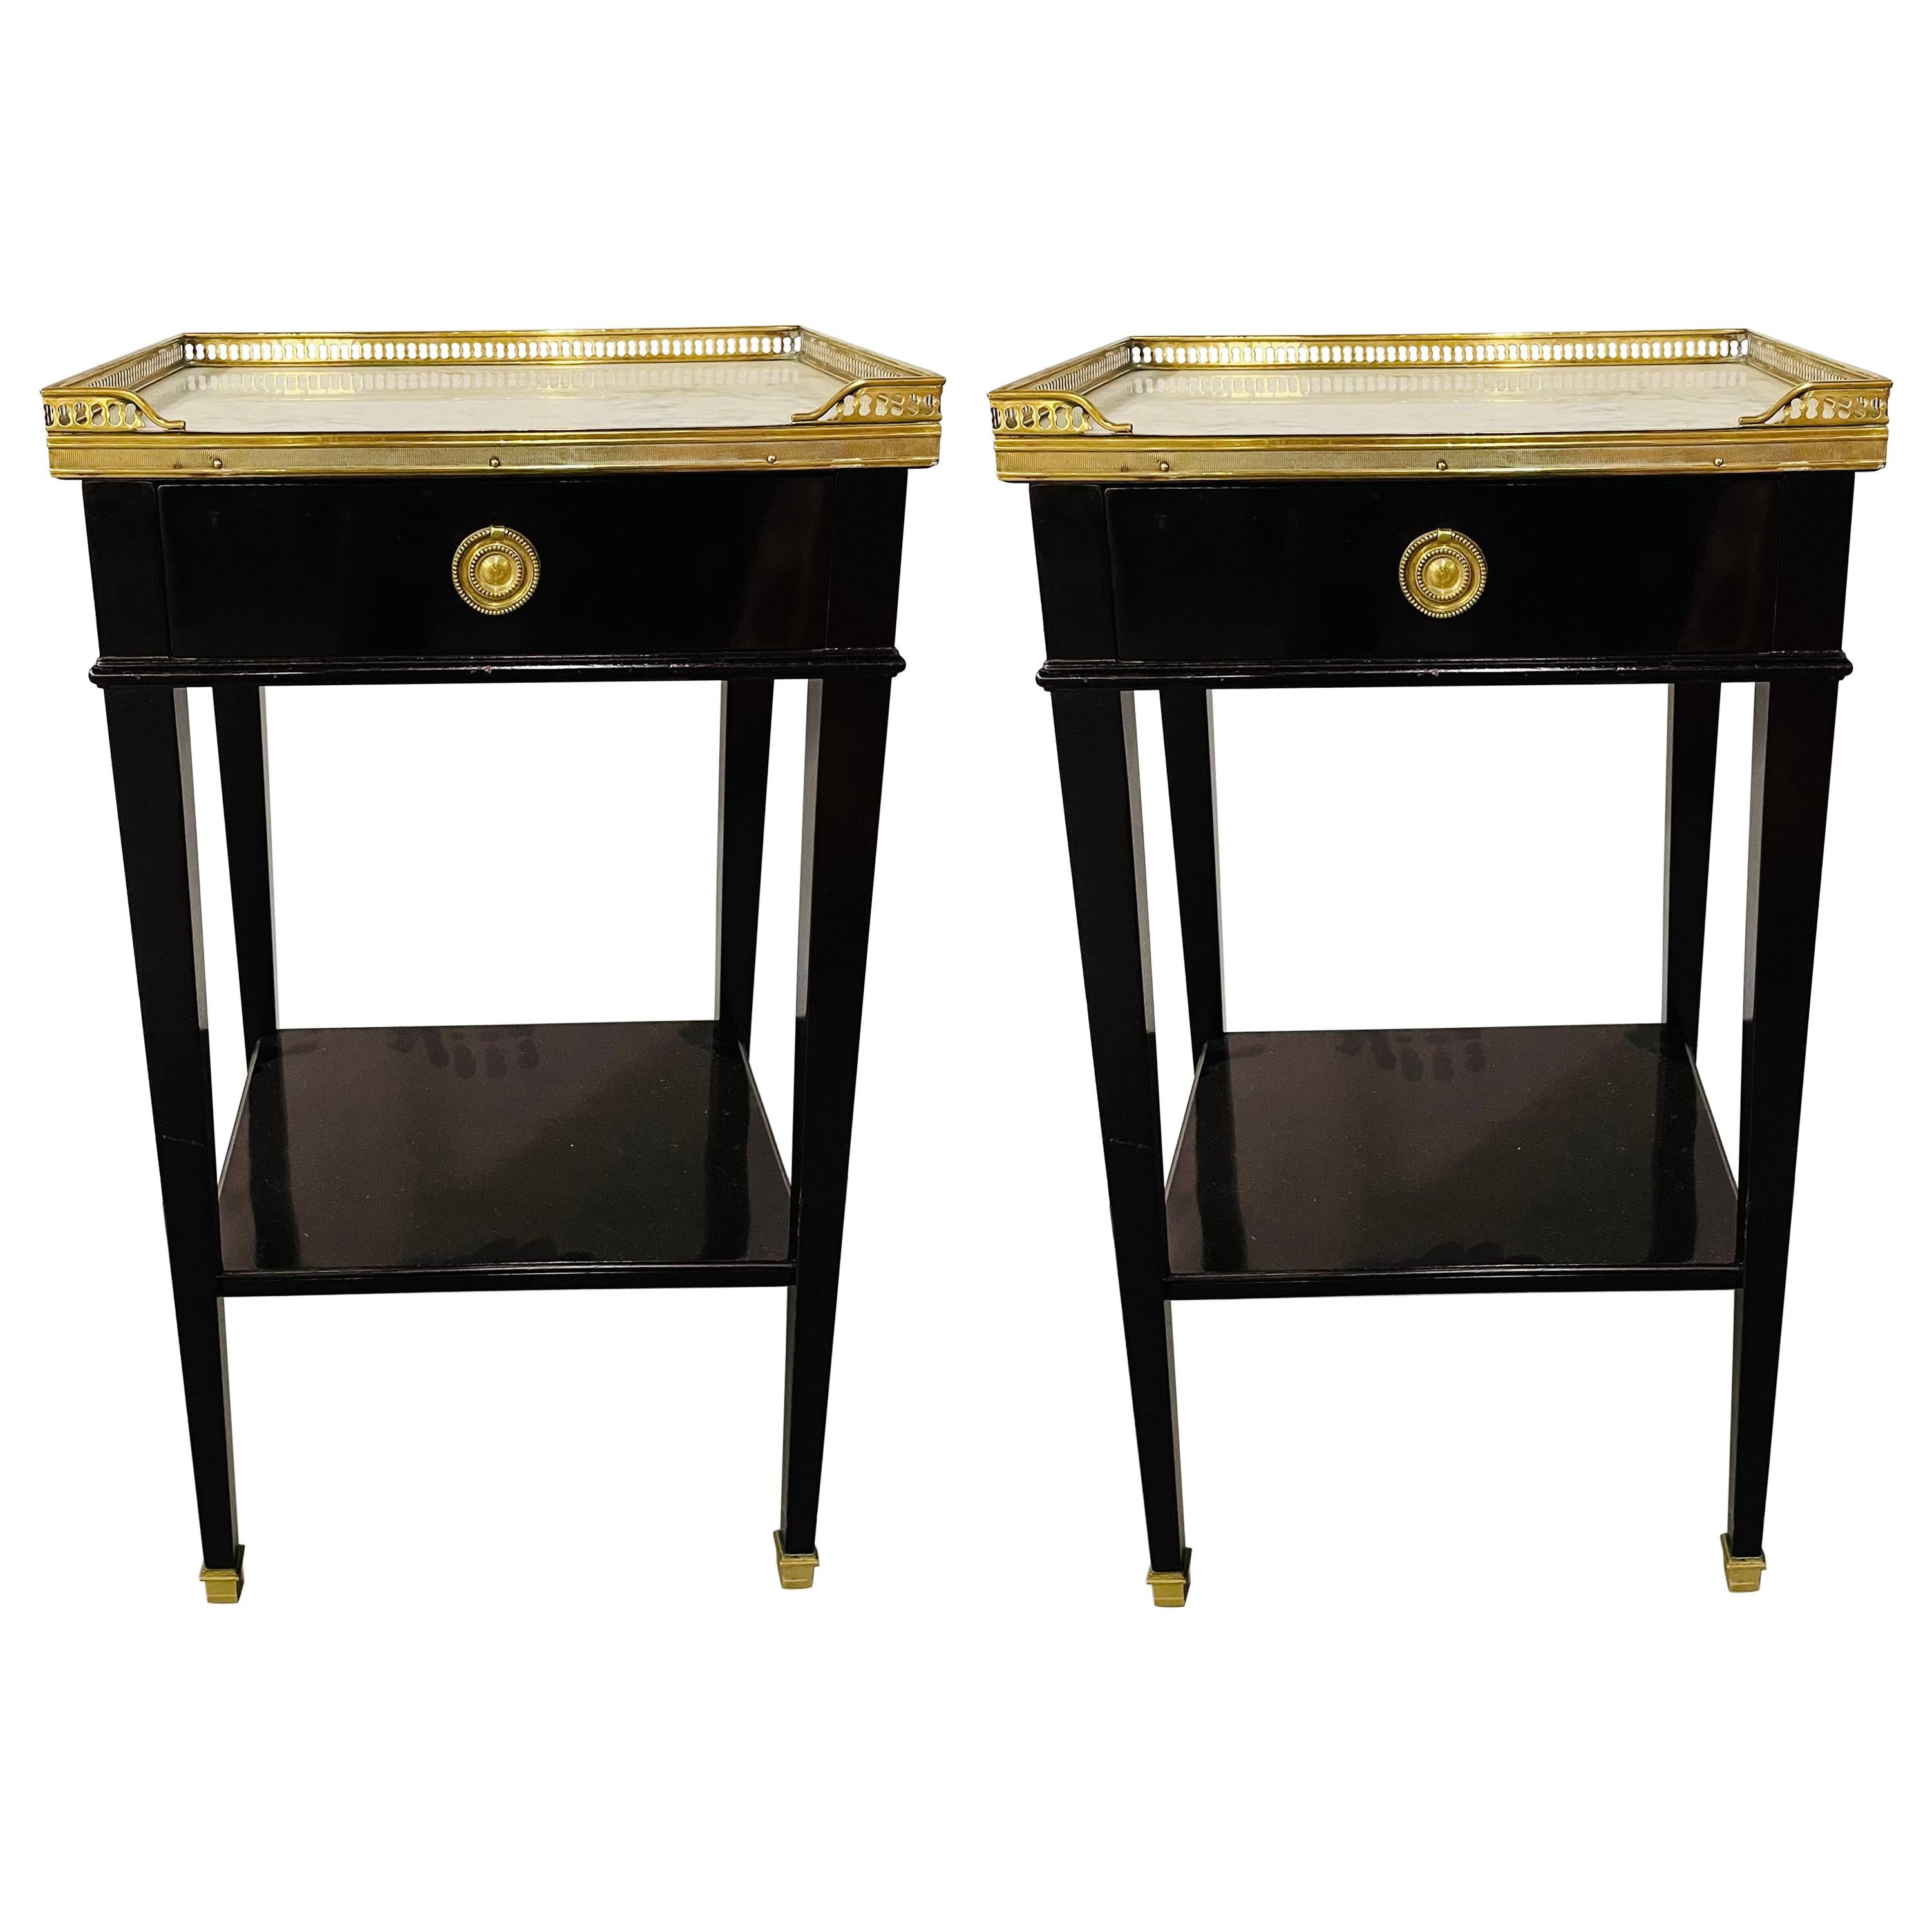 Maison Jansen French Modern Neoclassical Side Table or Nightstand, a Pair